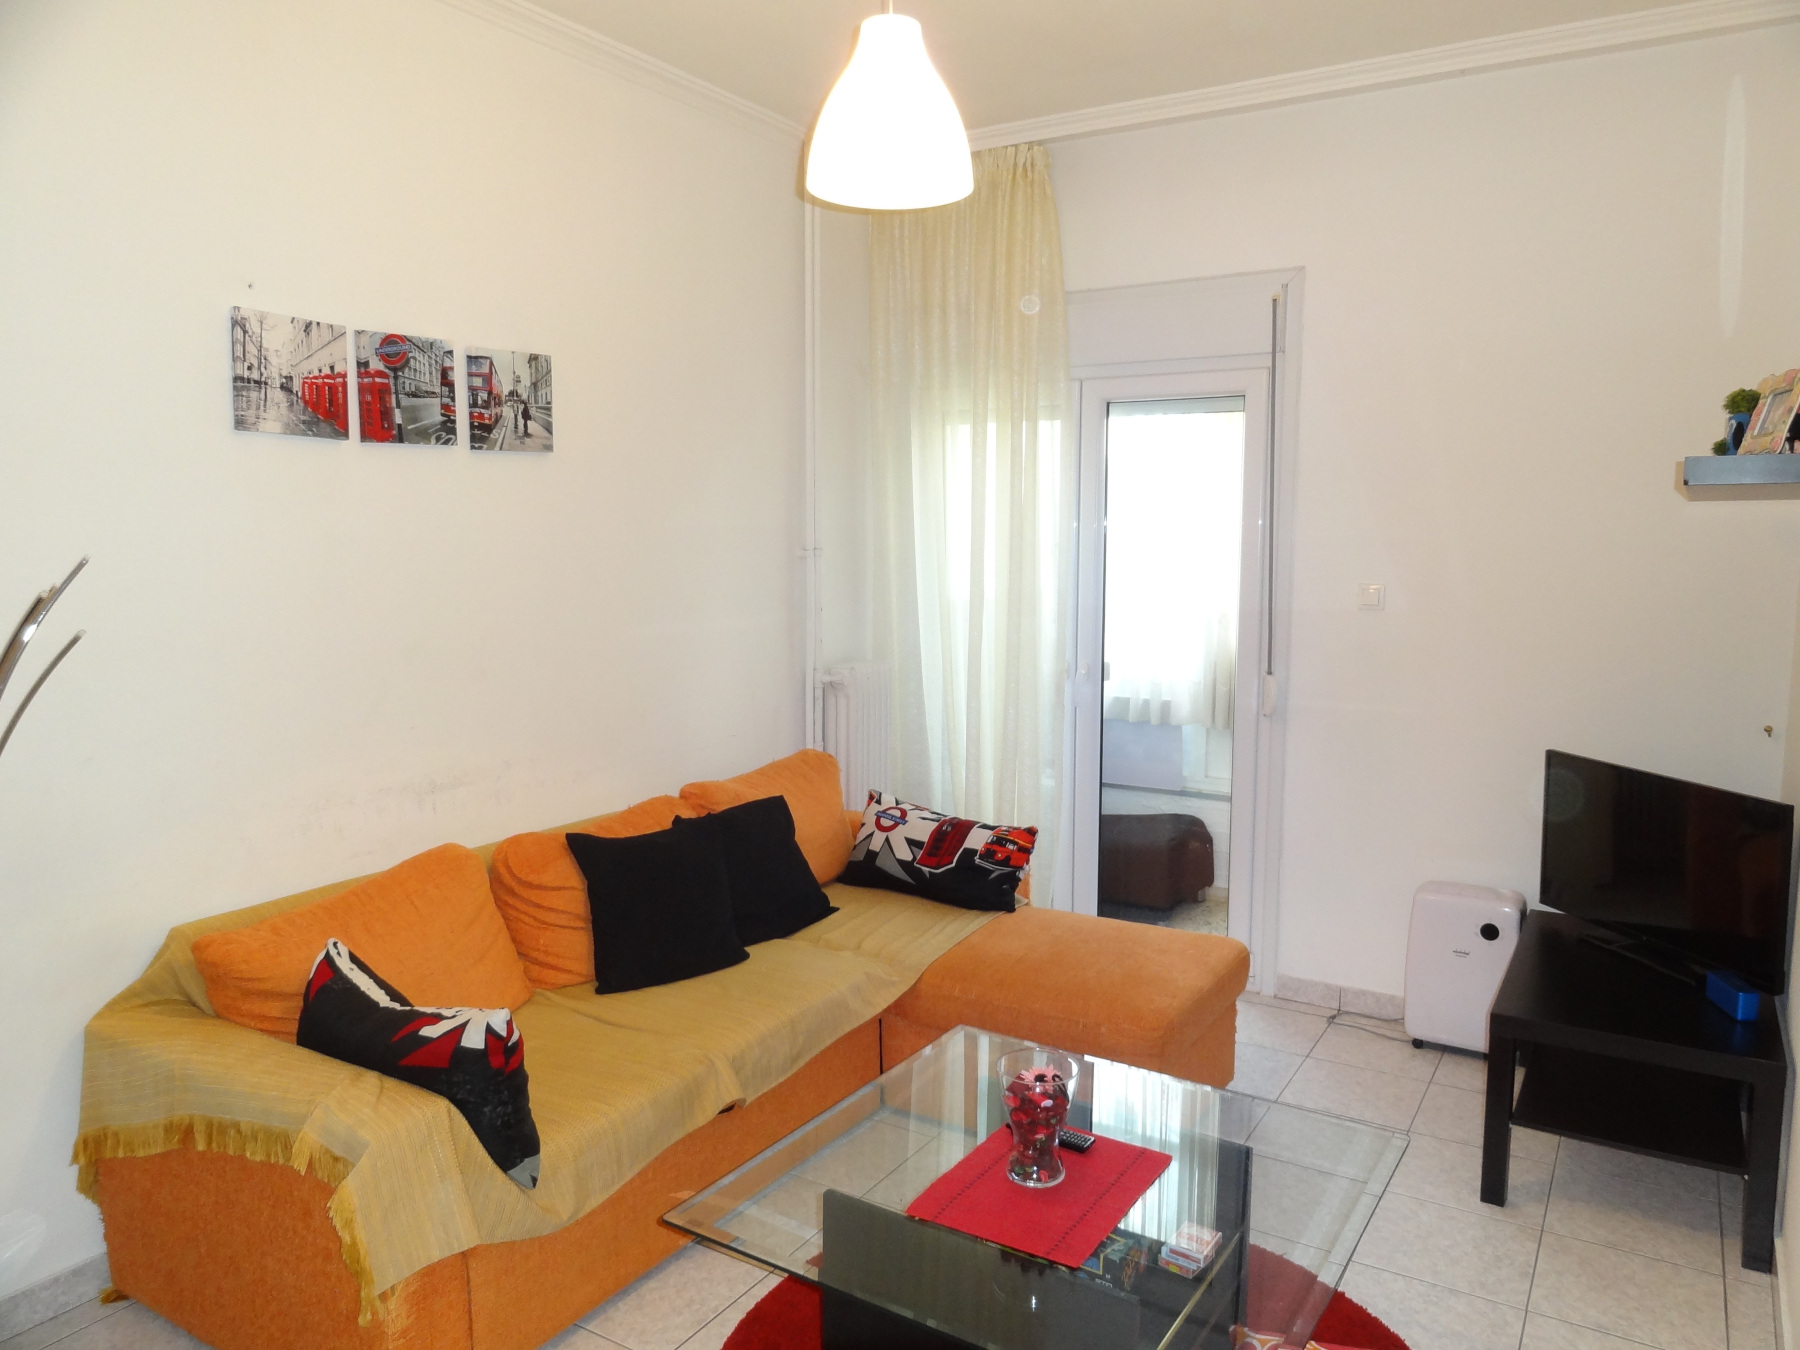 For sale 2 bedrooms apartment of 70 sq.m. 1st floor with parking space near Spyrou Lambrou in the center of Ioannina